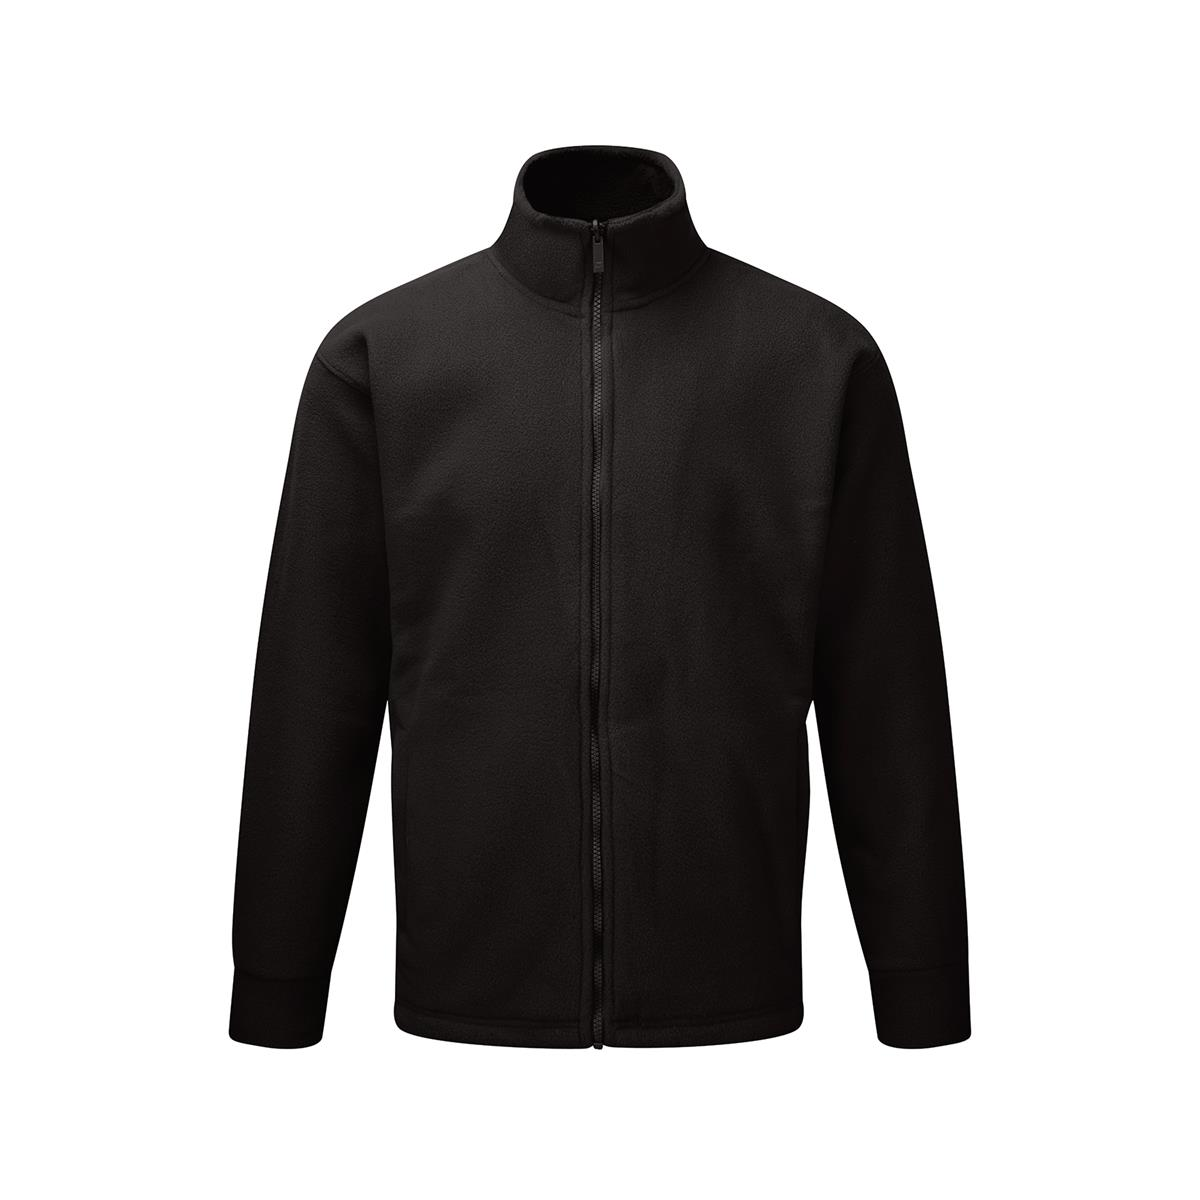 Image for Basic Fleece Jacket Elasticated Cuffs and Full Zip Front Large Black 1-3 Days Lead Time